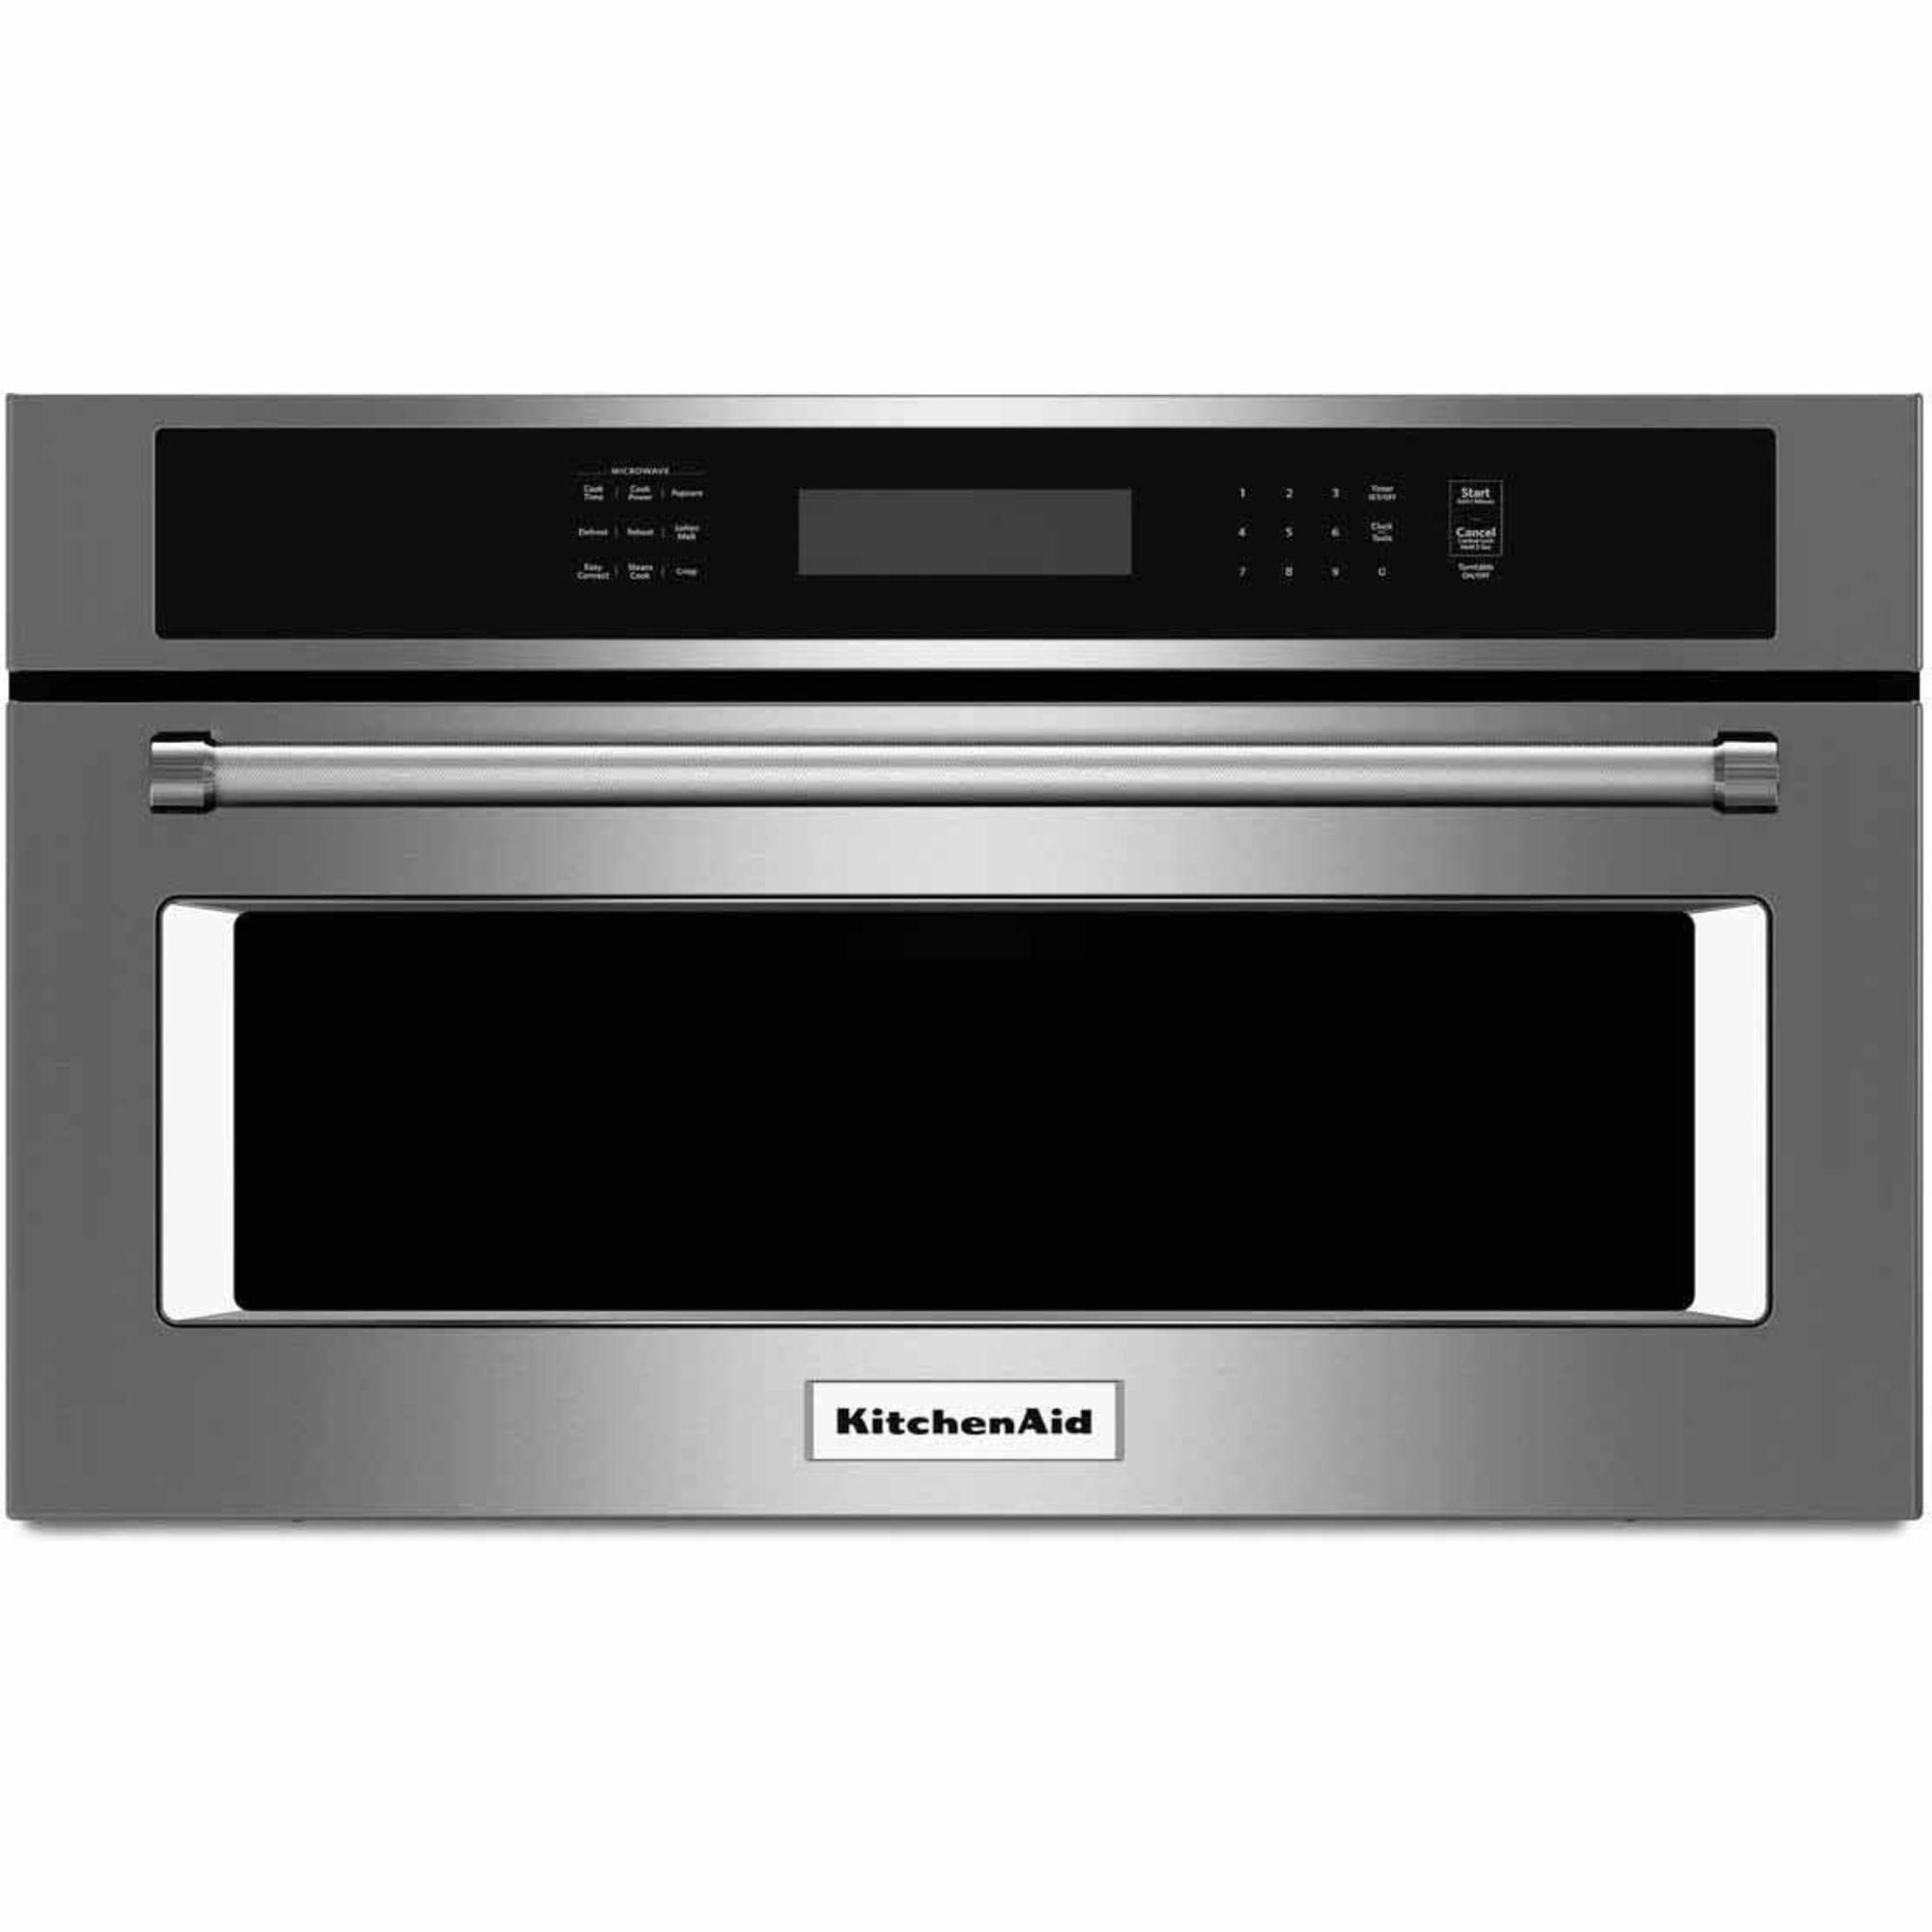 Lowes microwaves over the range white - Shop Kitchenaid Ft Built In Convection Microwave Sensor Cooking Controls Stainless Steel At Lowe S Canada Find Our Selection Of Microwaves At The Lowest